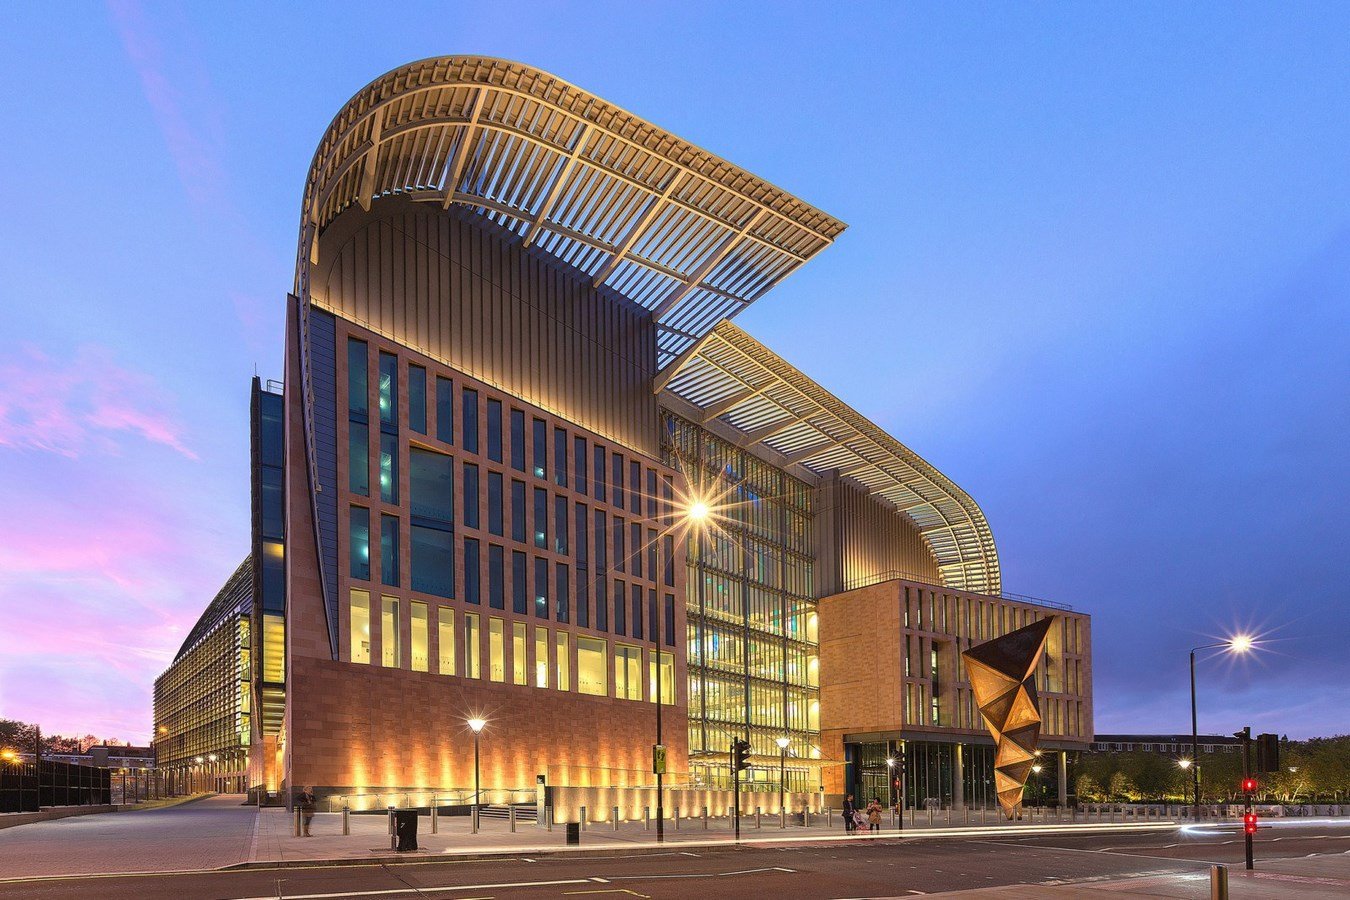 15 Projects by HOK Architects every Architect should know about - The Francis Crick Institute